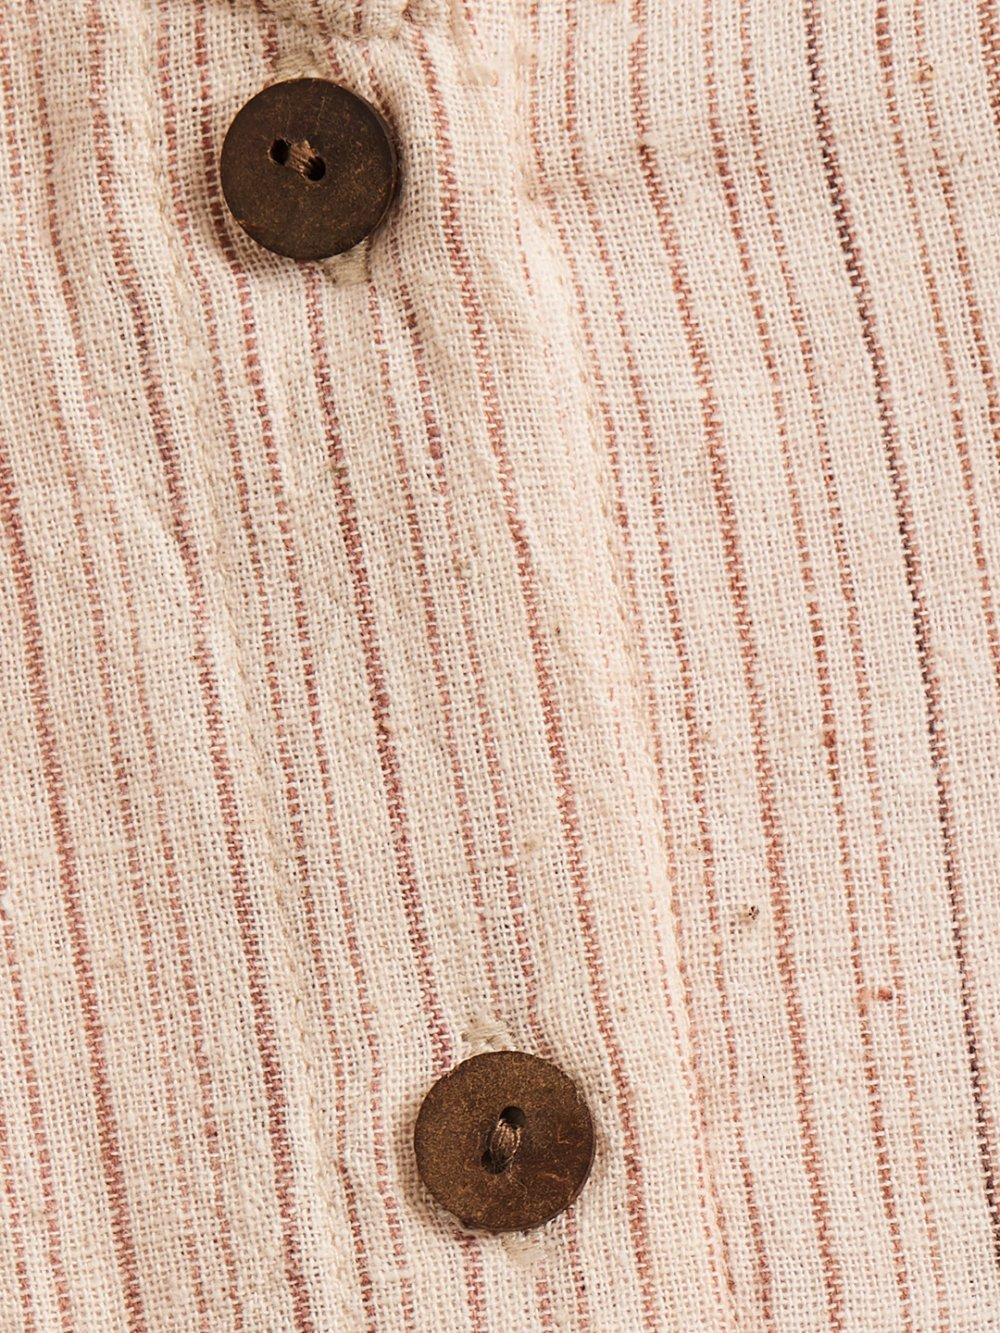 Organic Clothing Linen Fashion Texture